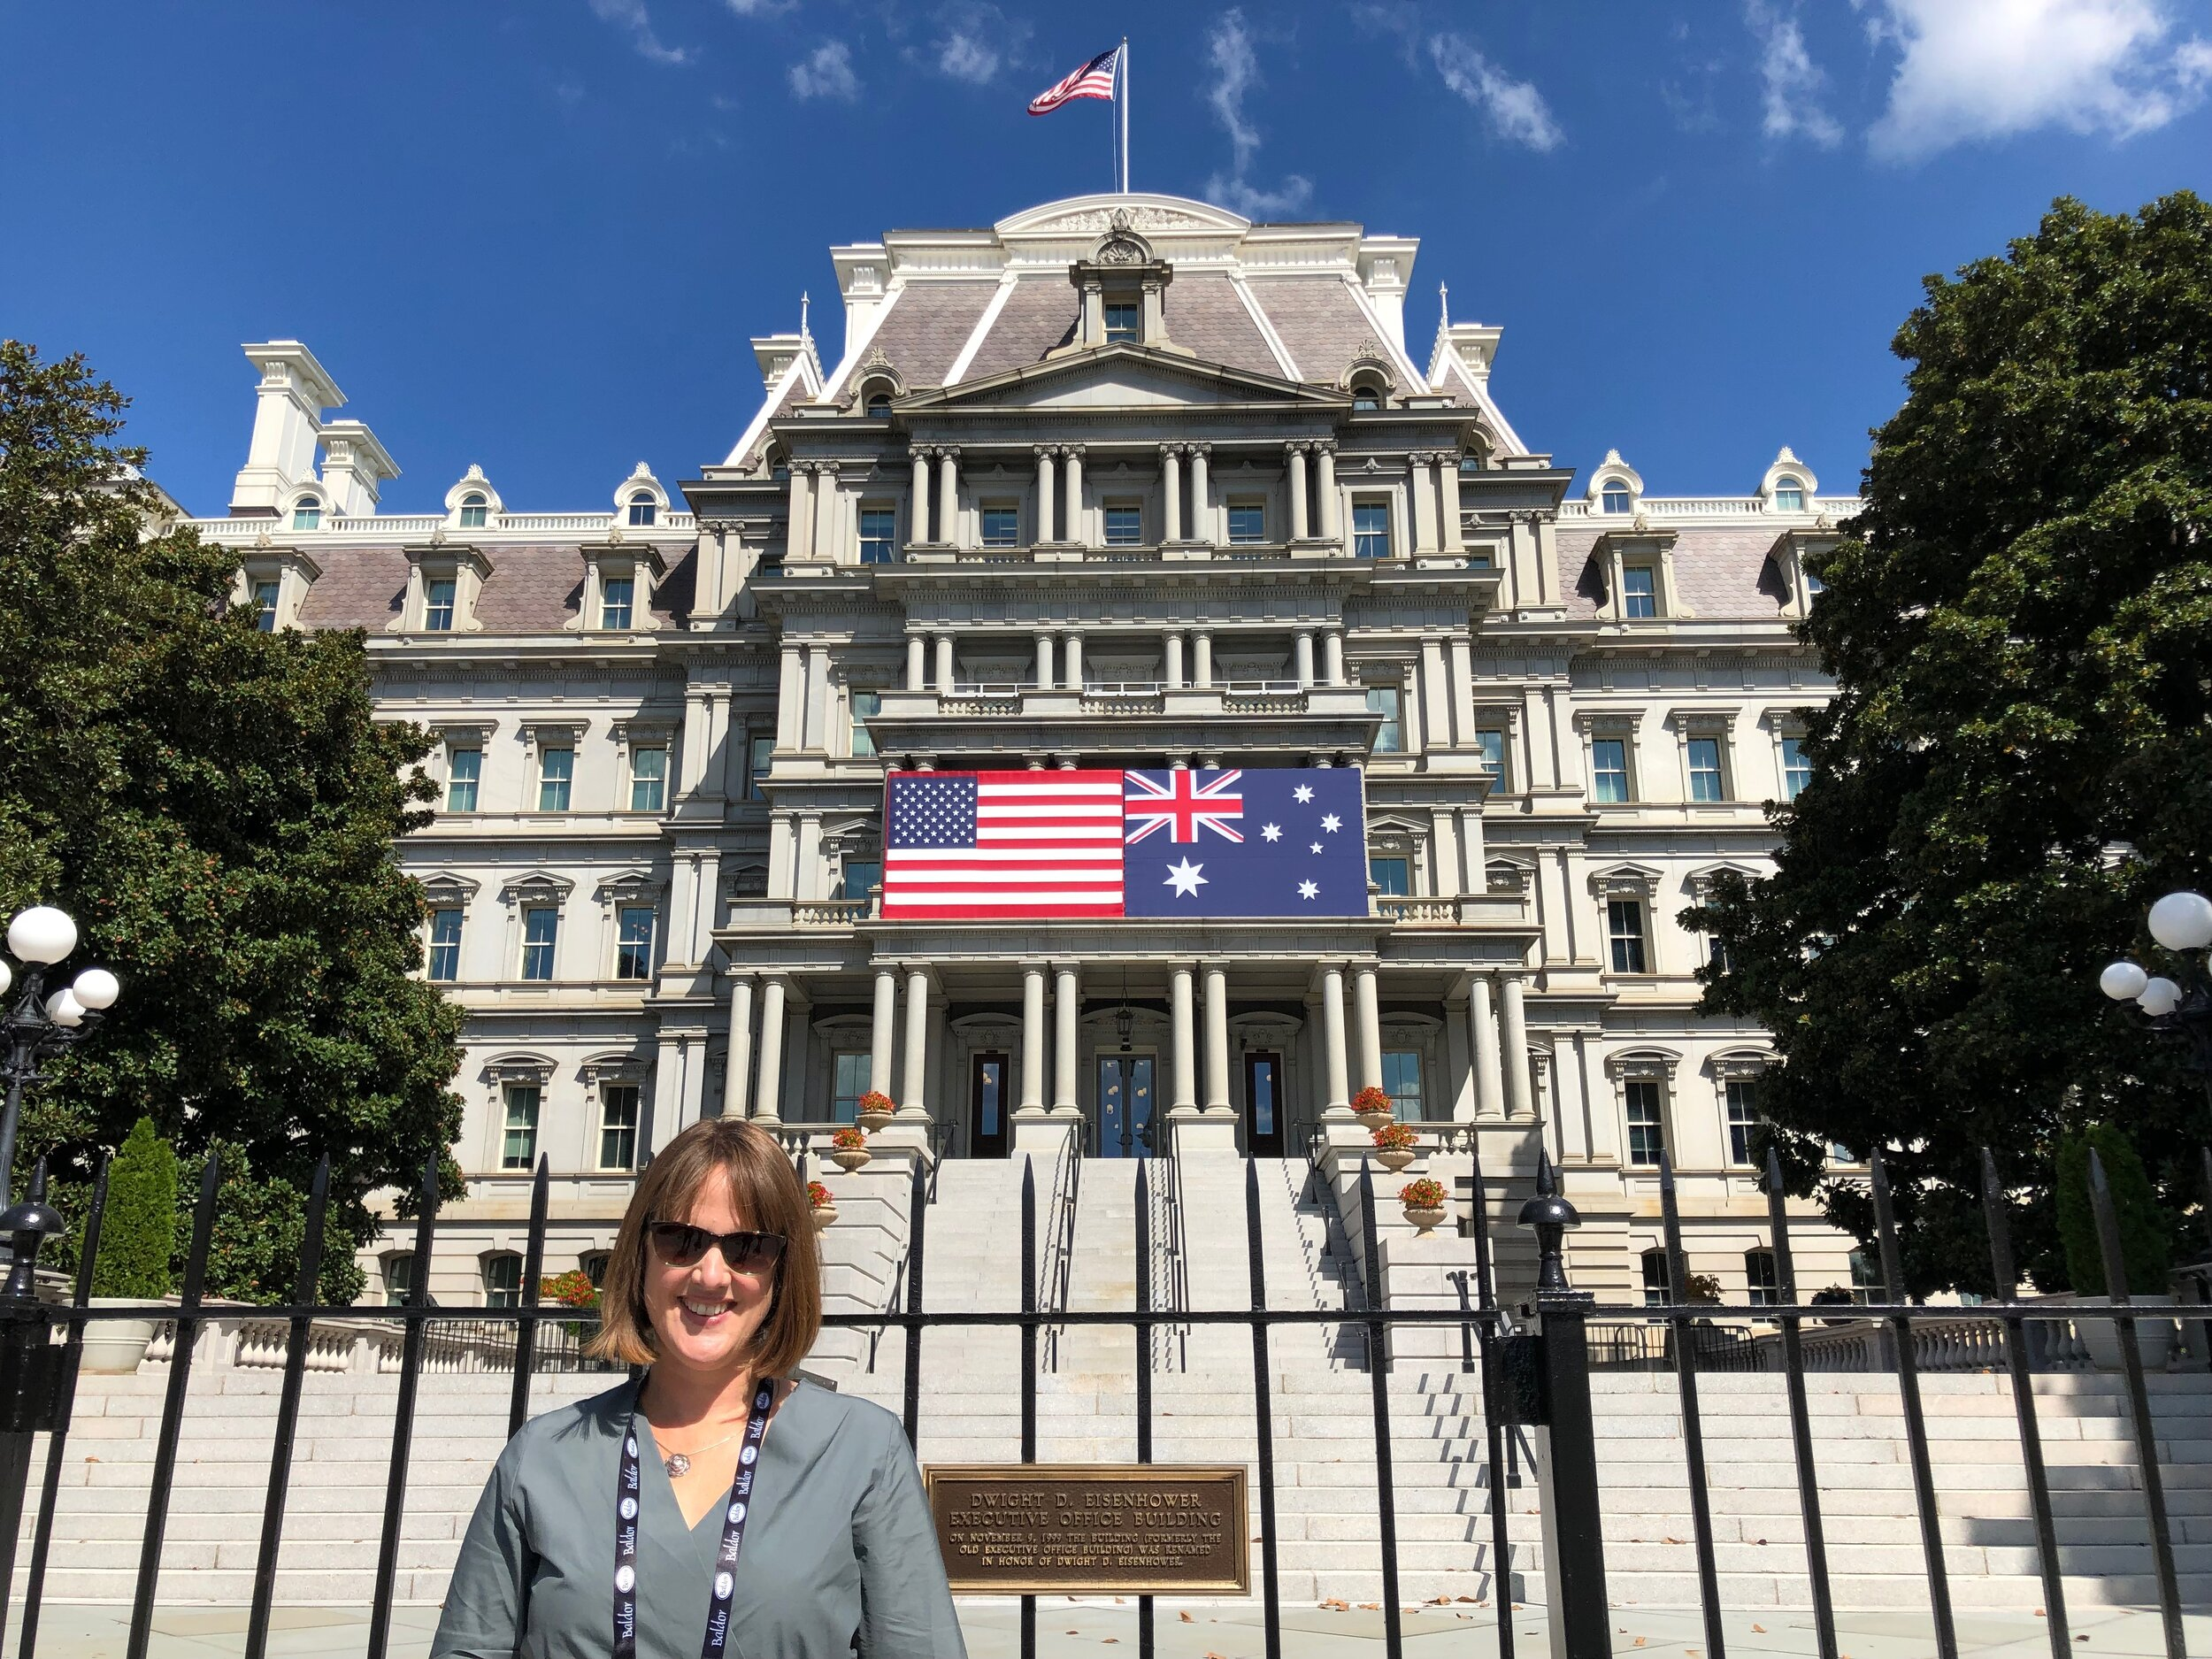 Claire pictured in front of the historic Eisenhower Executive Office Building